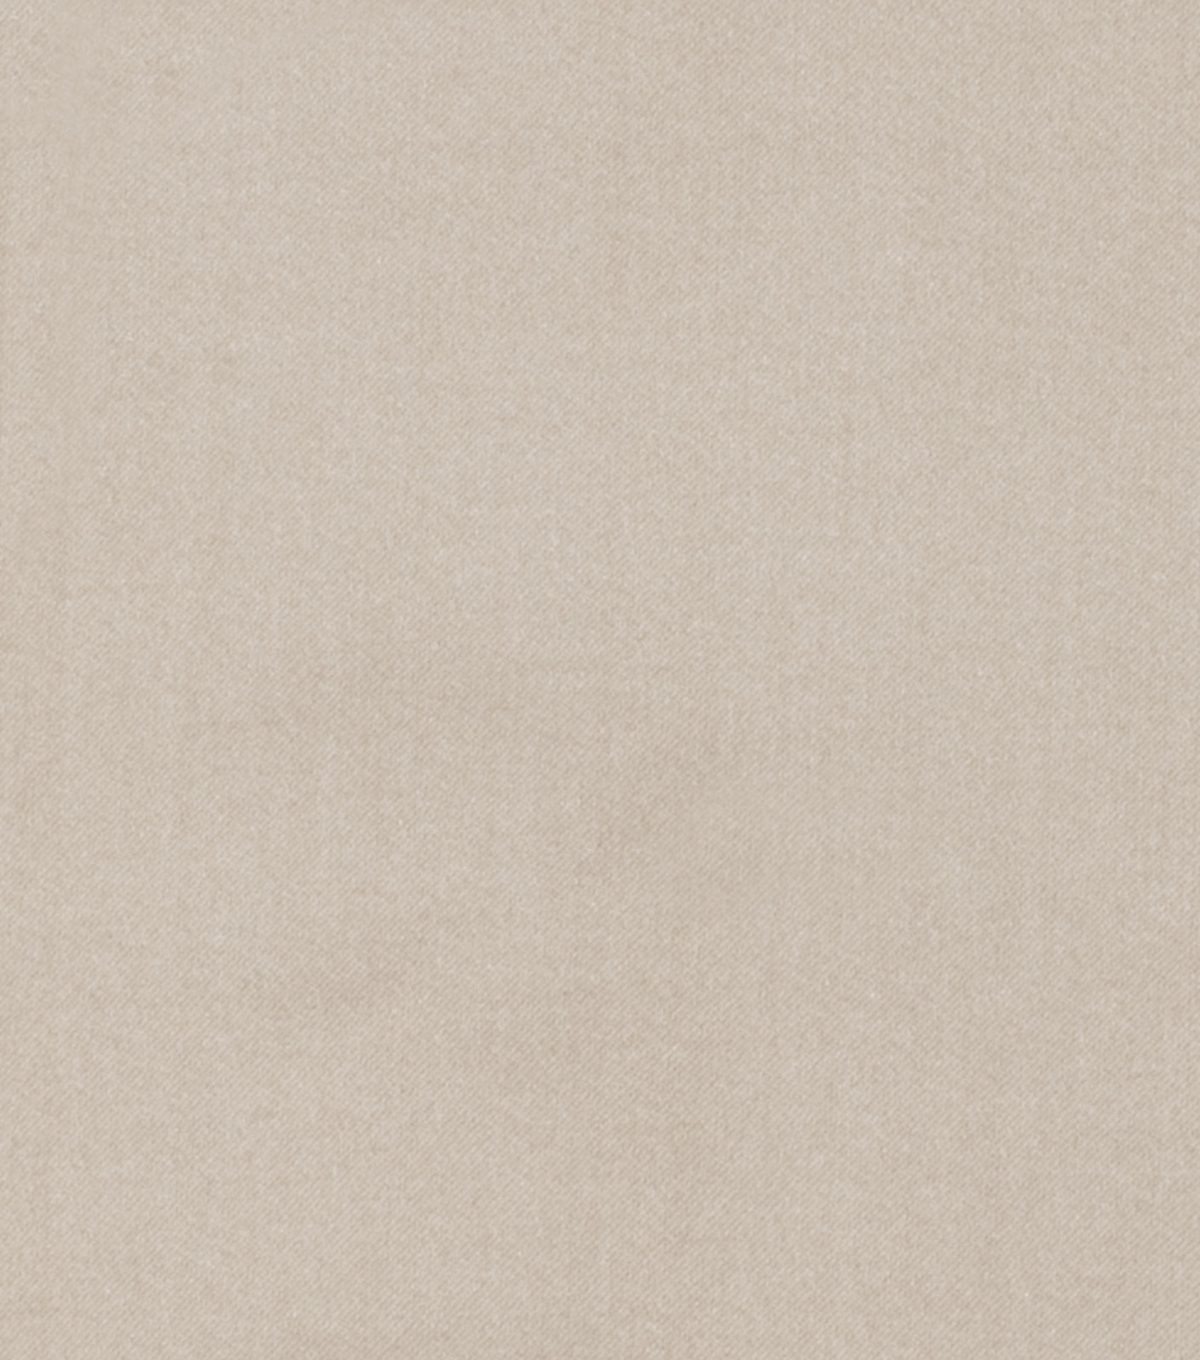 Home Decor 8\u0022x8\u0022 Fabric Swatch-Signature Series Couture Satin Sand